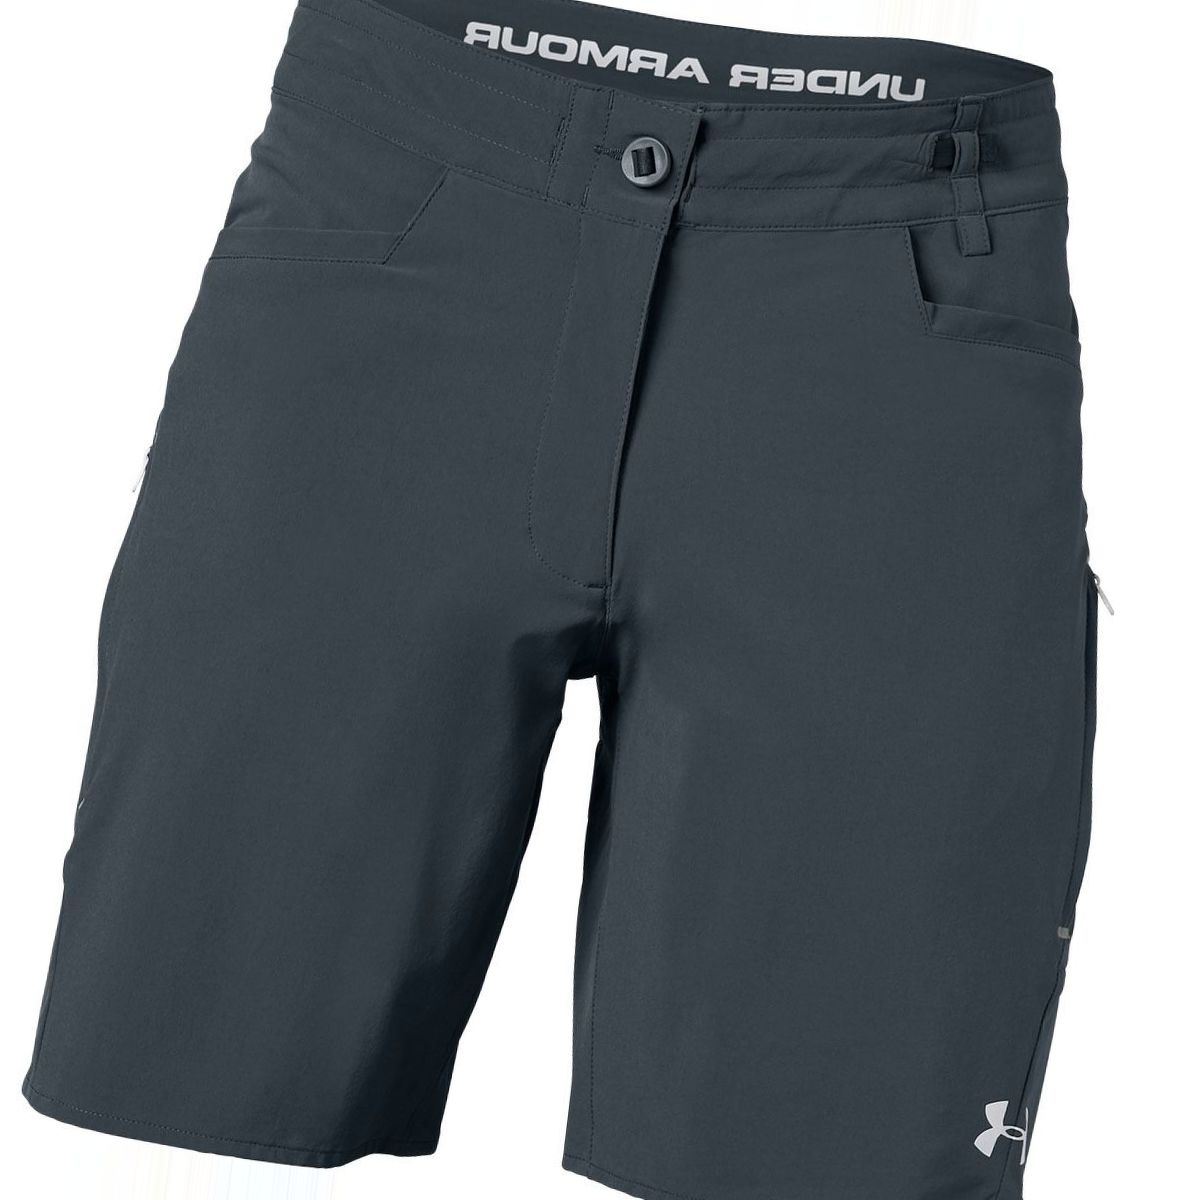 Under Armour Shoreman Board Short - Men's